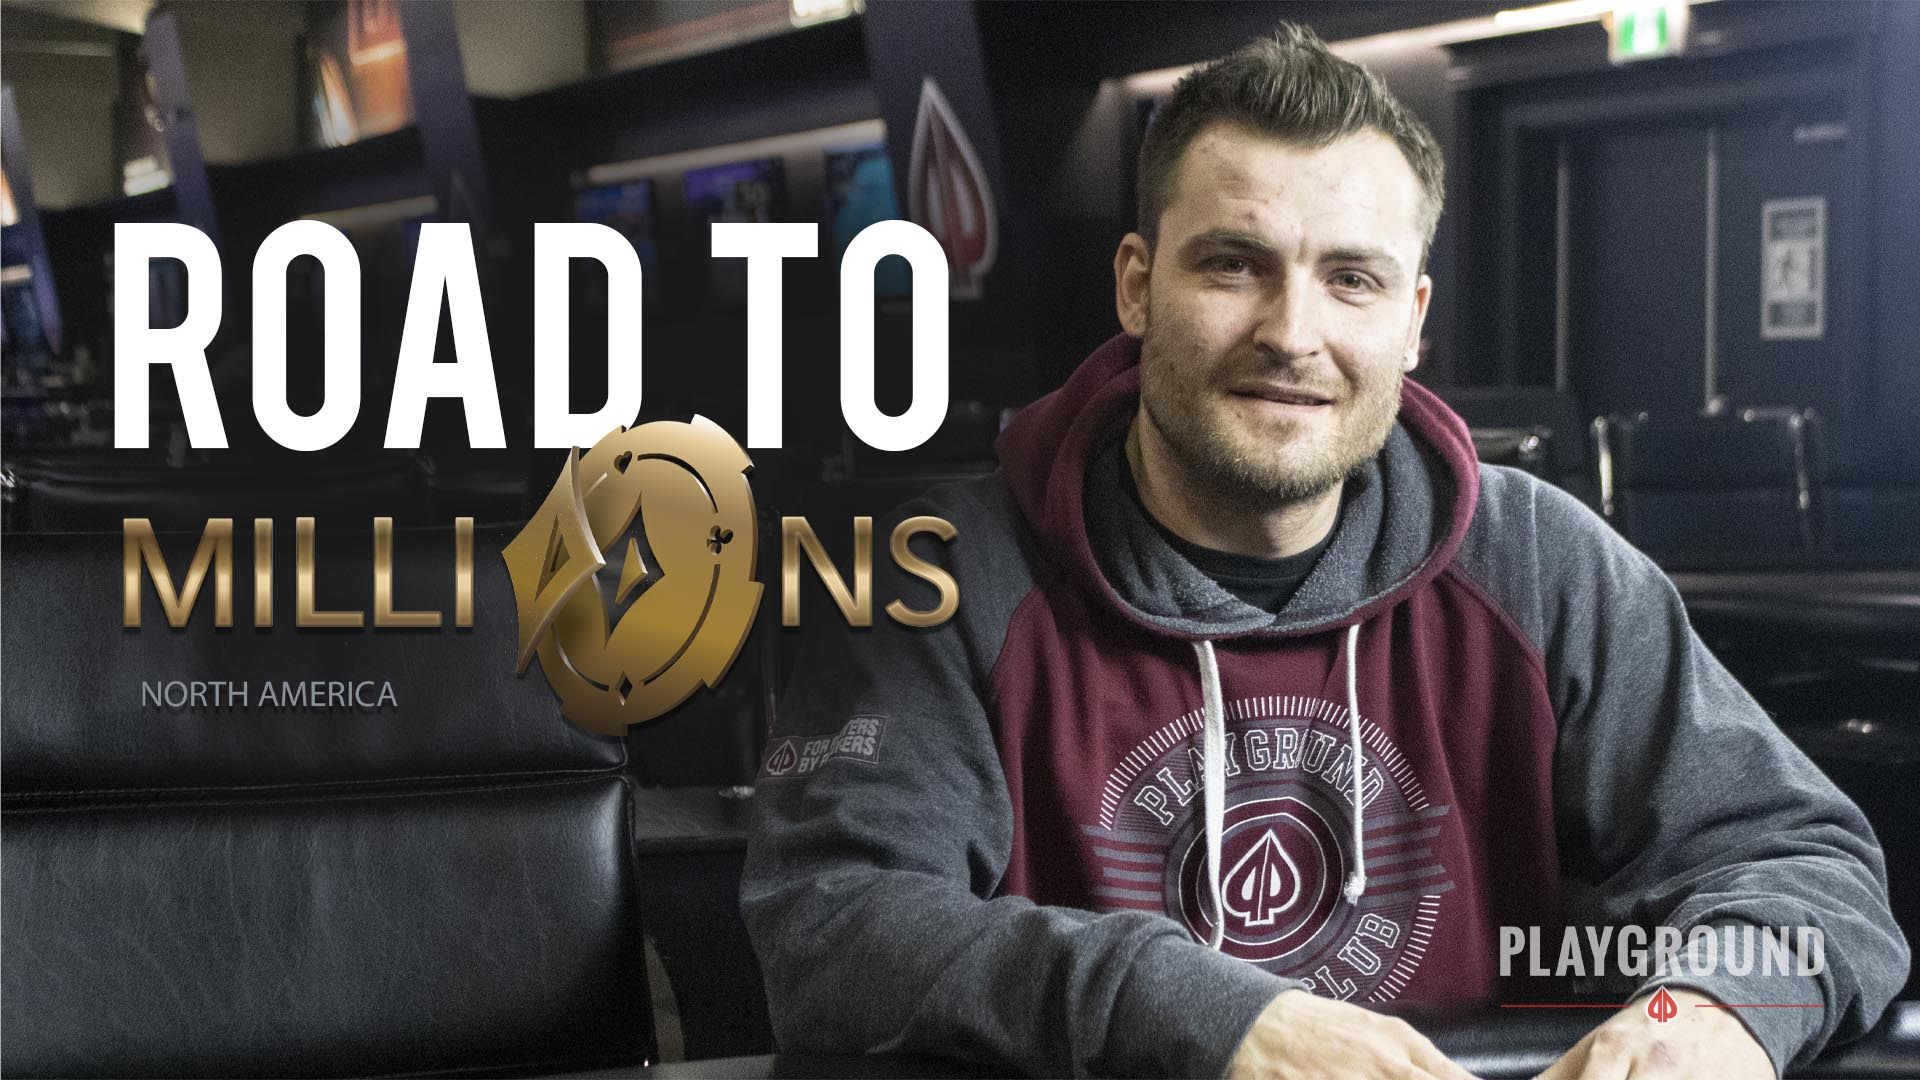 Road to MILLIONS – Episode 3